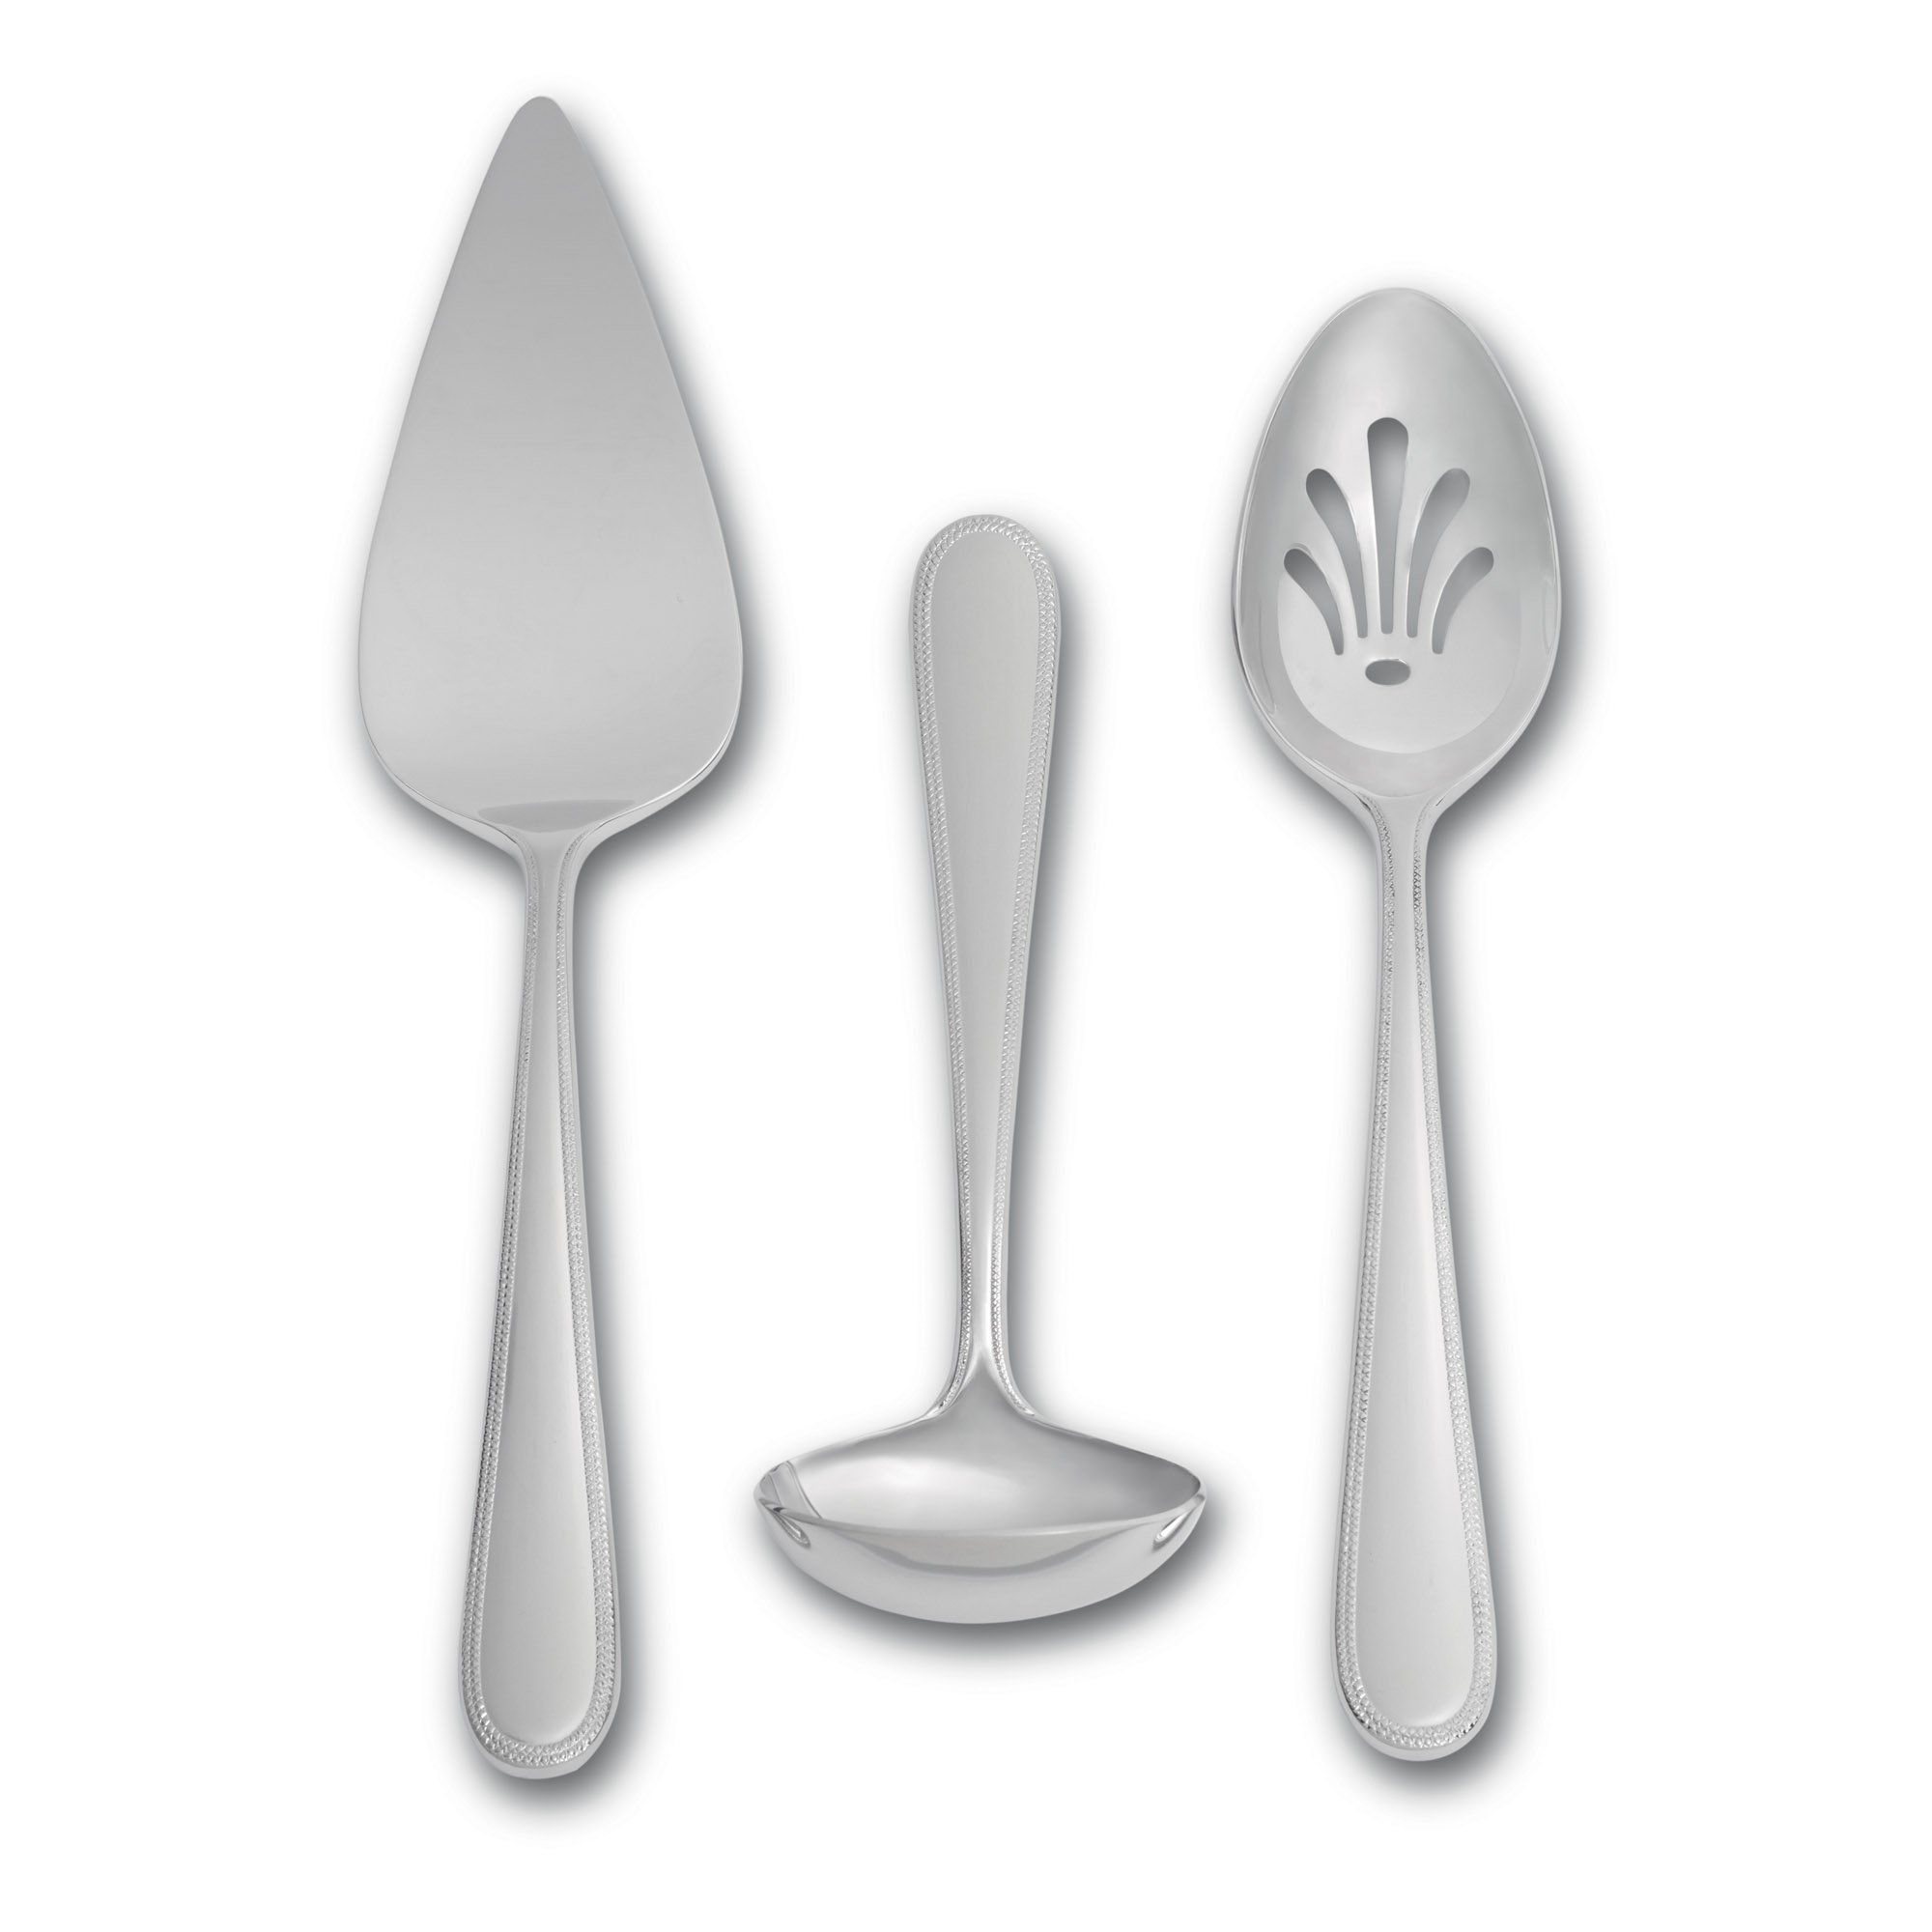 Vera Wang Wedgwood Infinity 3 Piece Serving Set